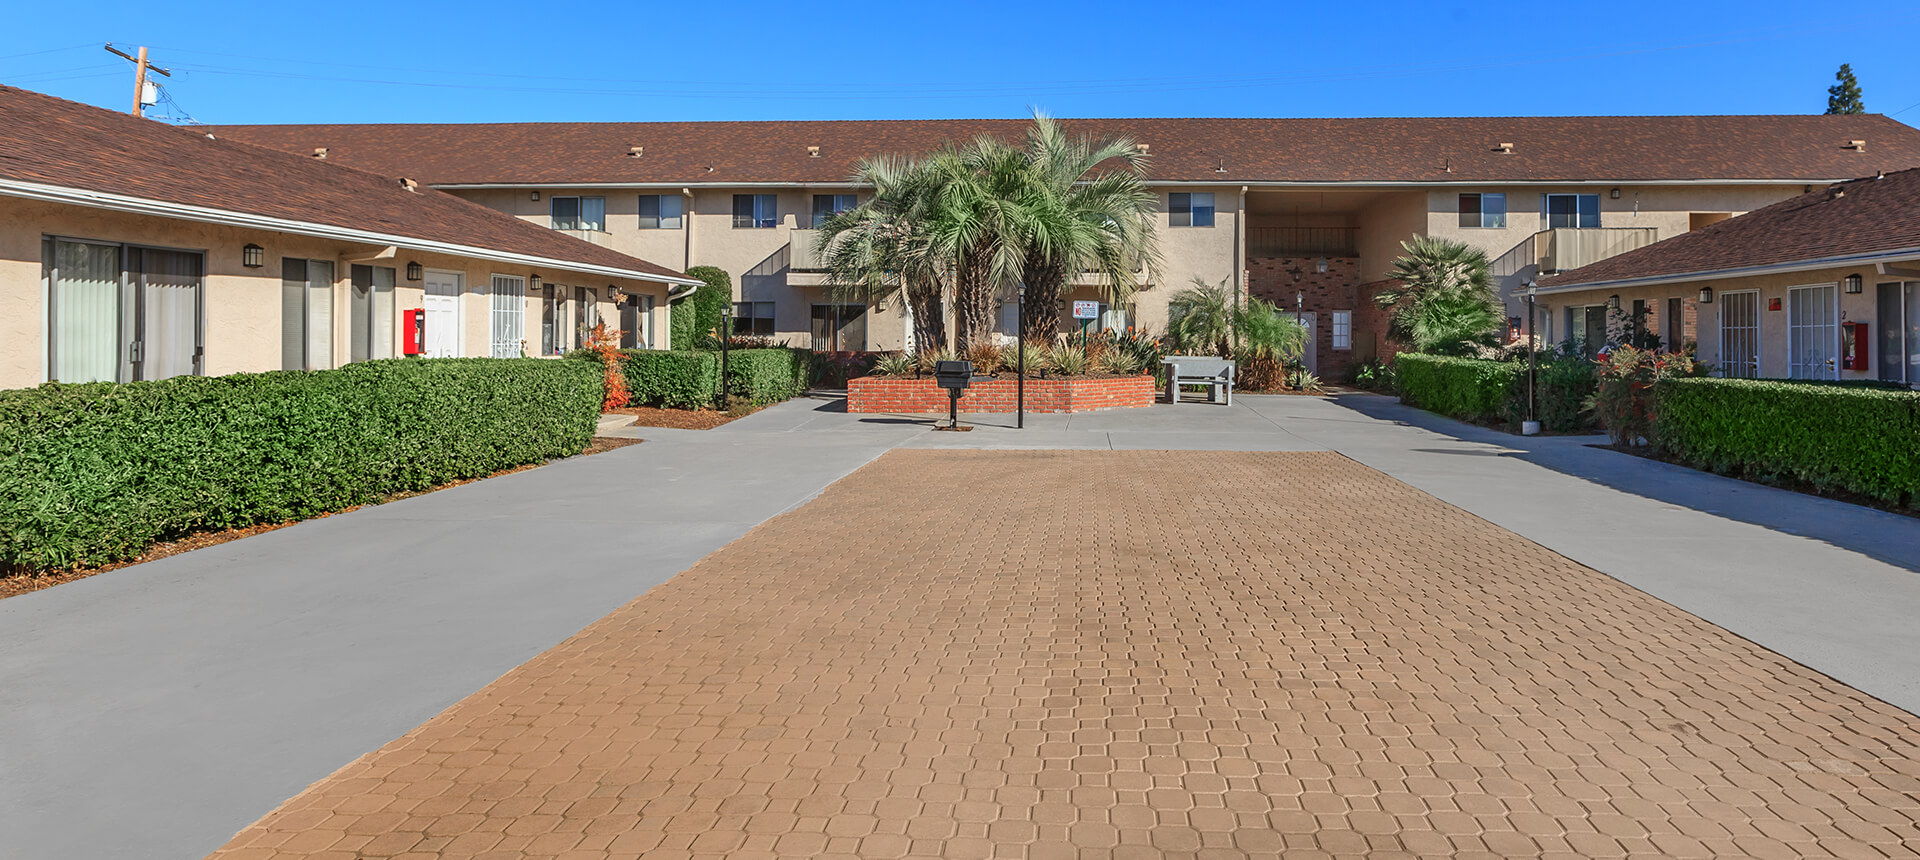 Colonial garden apartments for Landscape rock upland ca